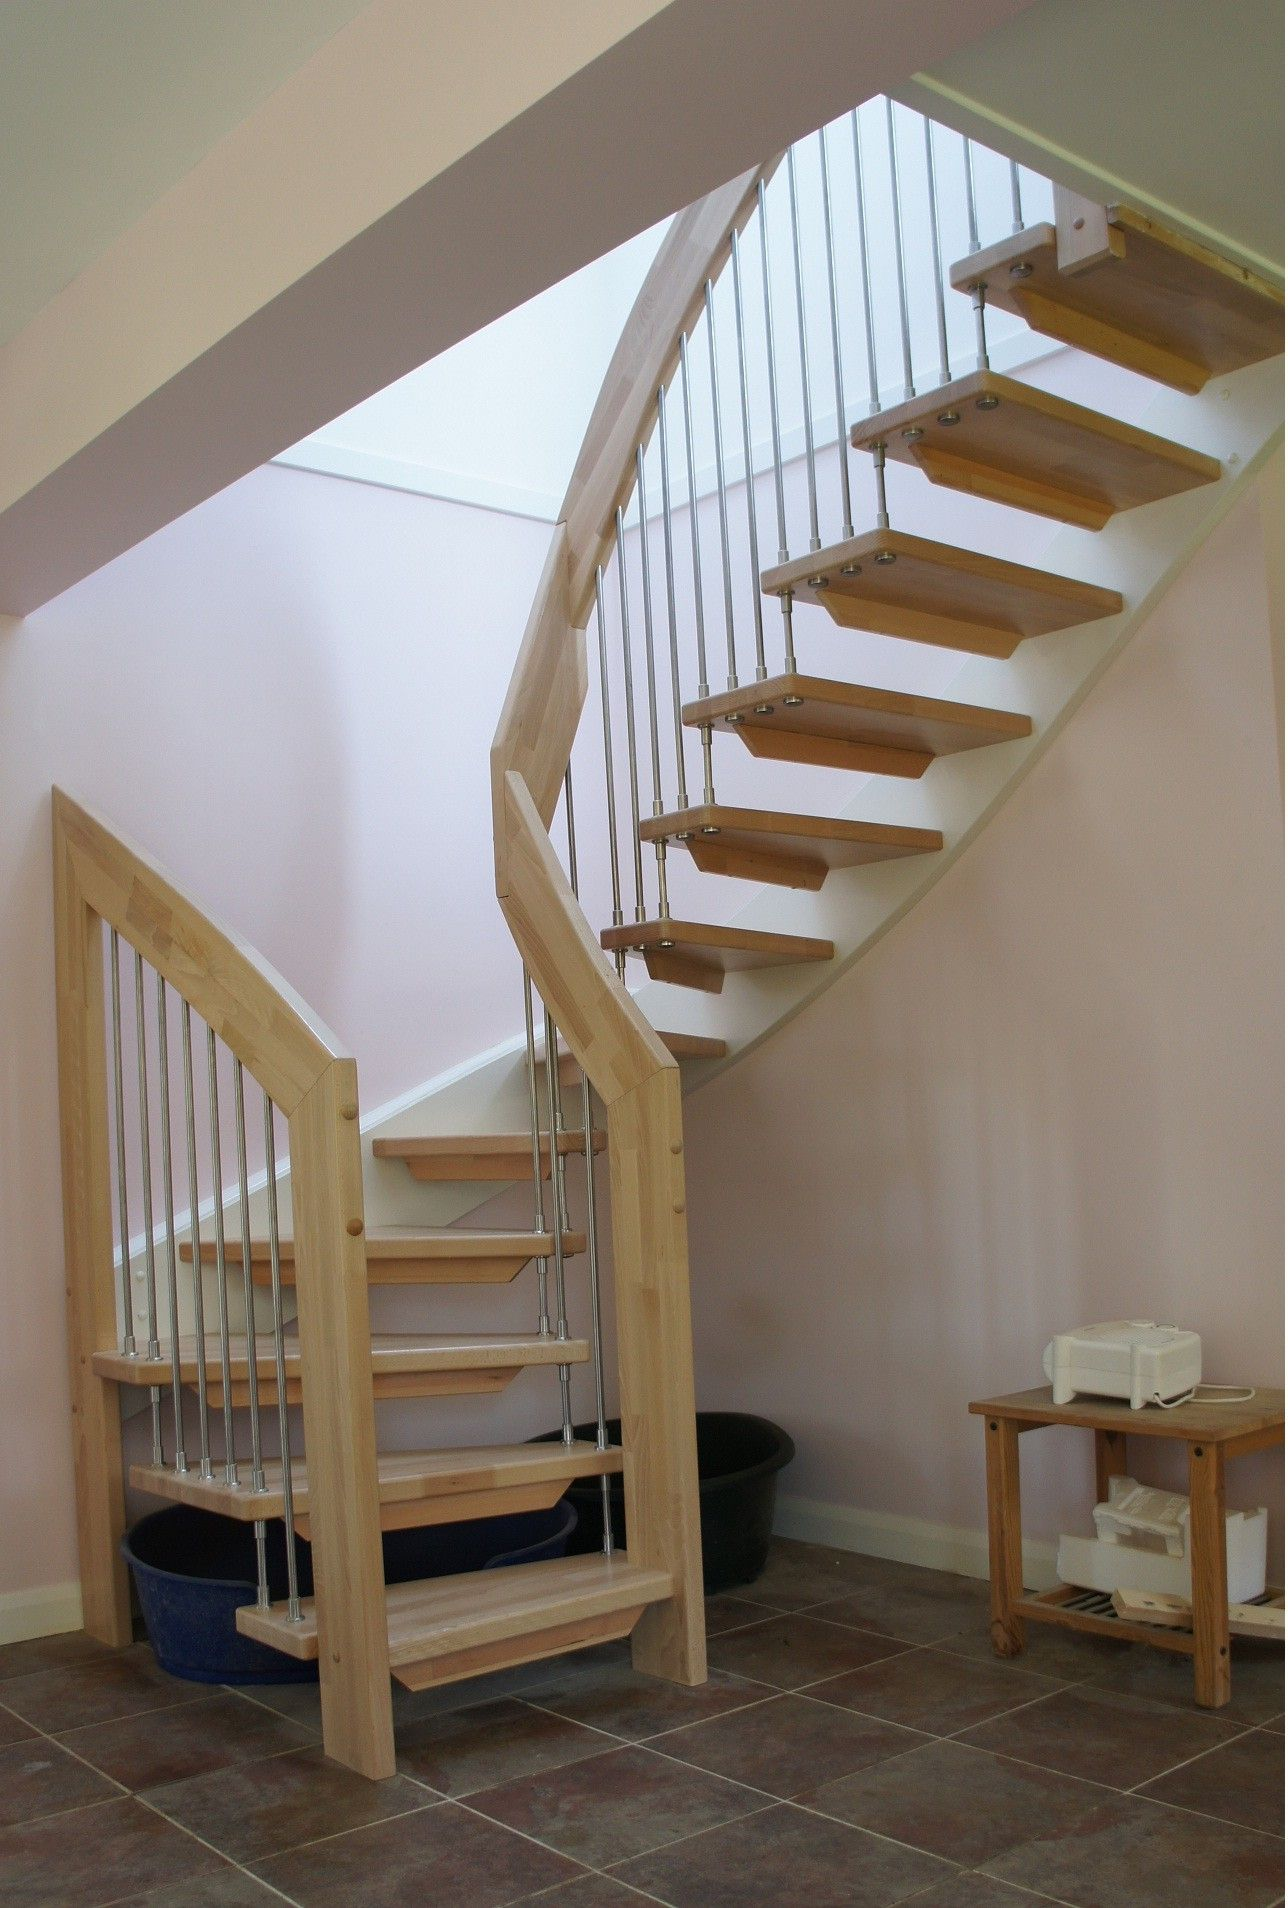 Simple Design Ideas Of Small Space Staircase With Brown Wooden | Stairs Design For Small Space | Steel | Space Saving | Limited Space | Unique | Residential